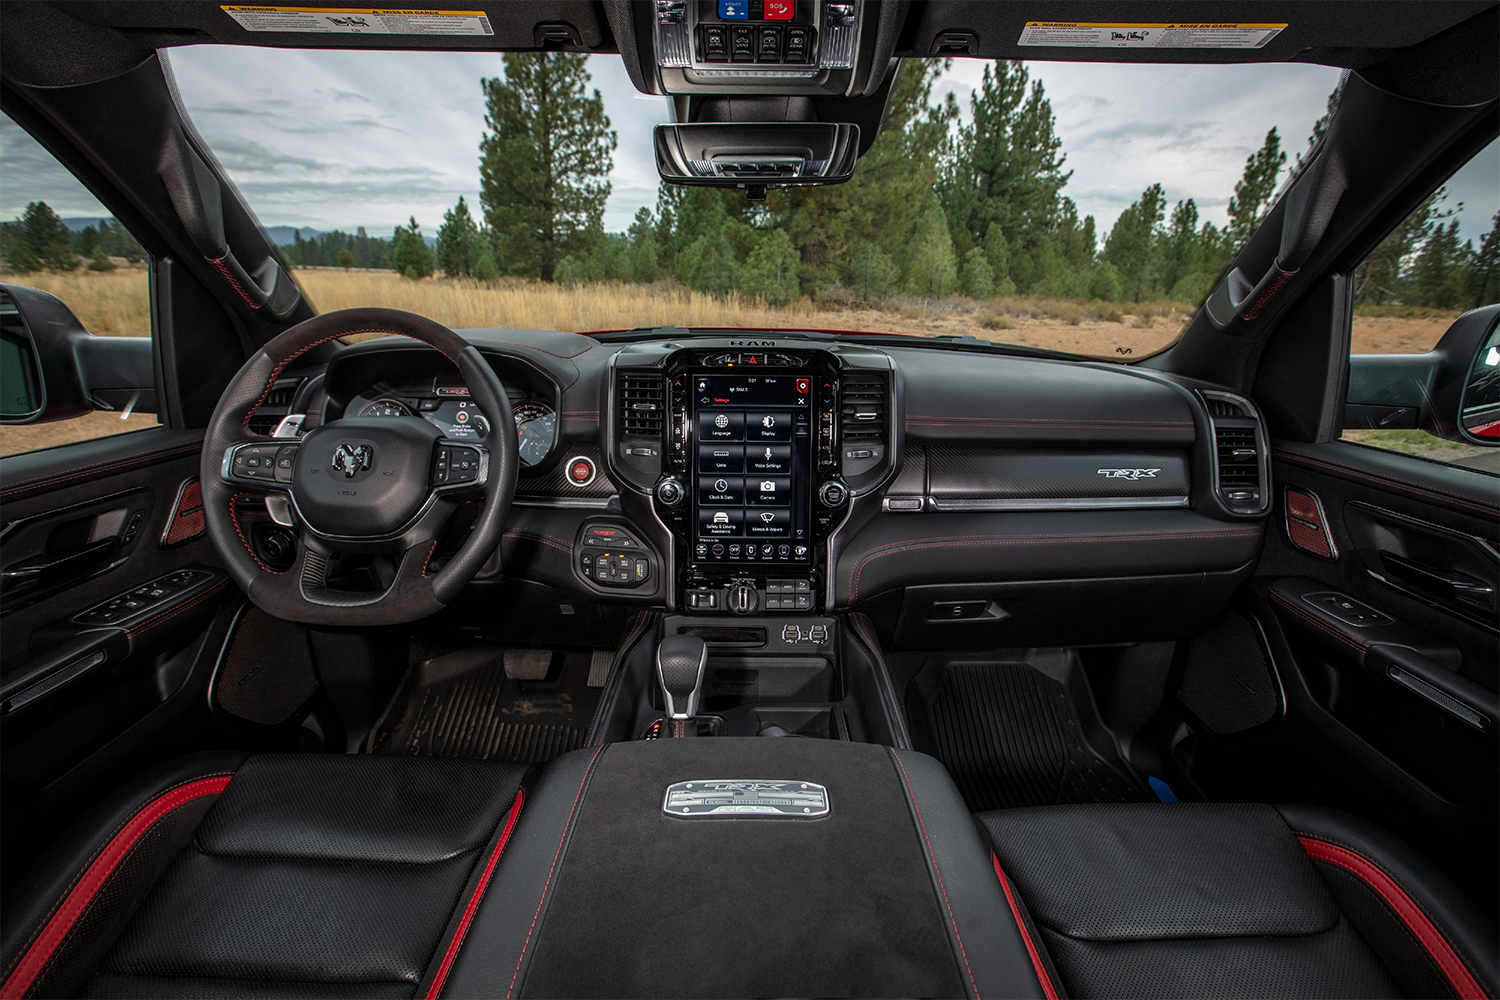 The front two seats in the interior of the 2021 Ram 1500 TRX pickup truck